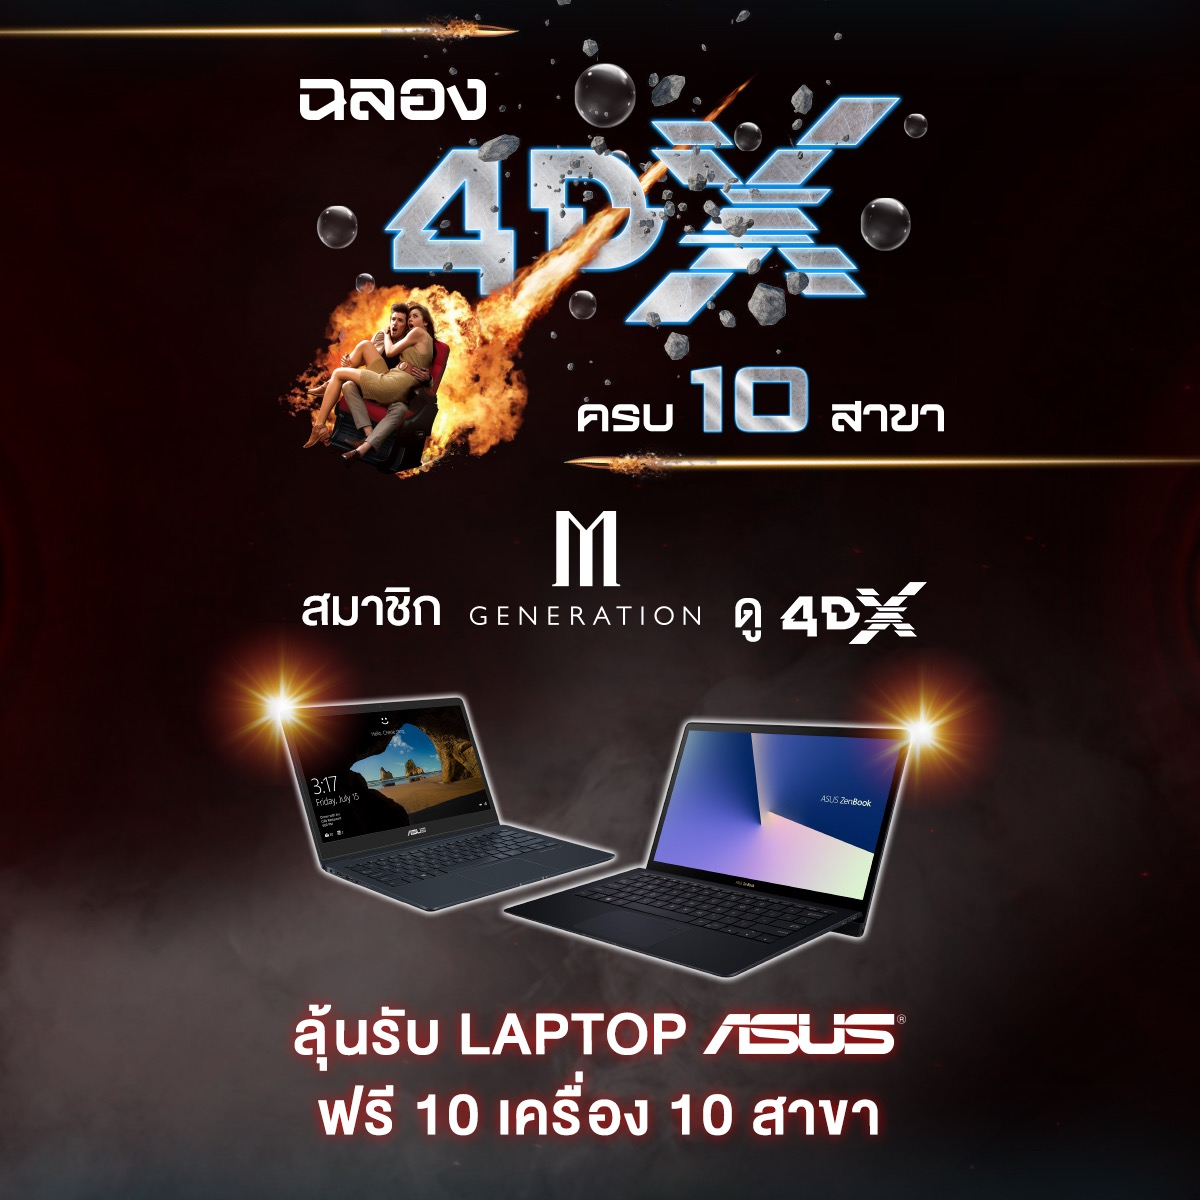 Promotion 4DX Special Price 100 Baht Only P03